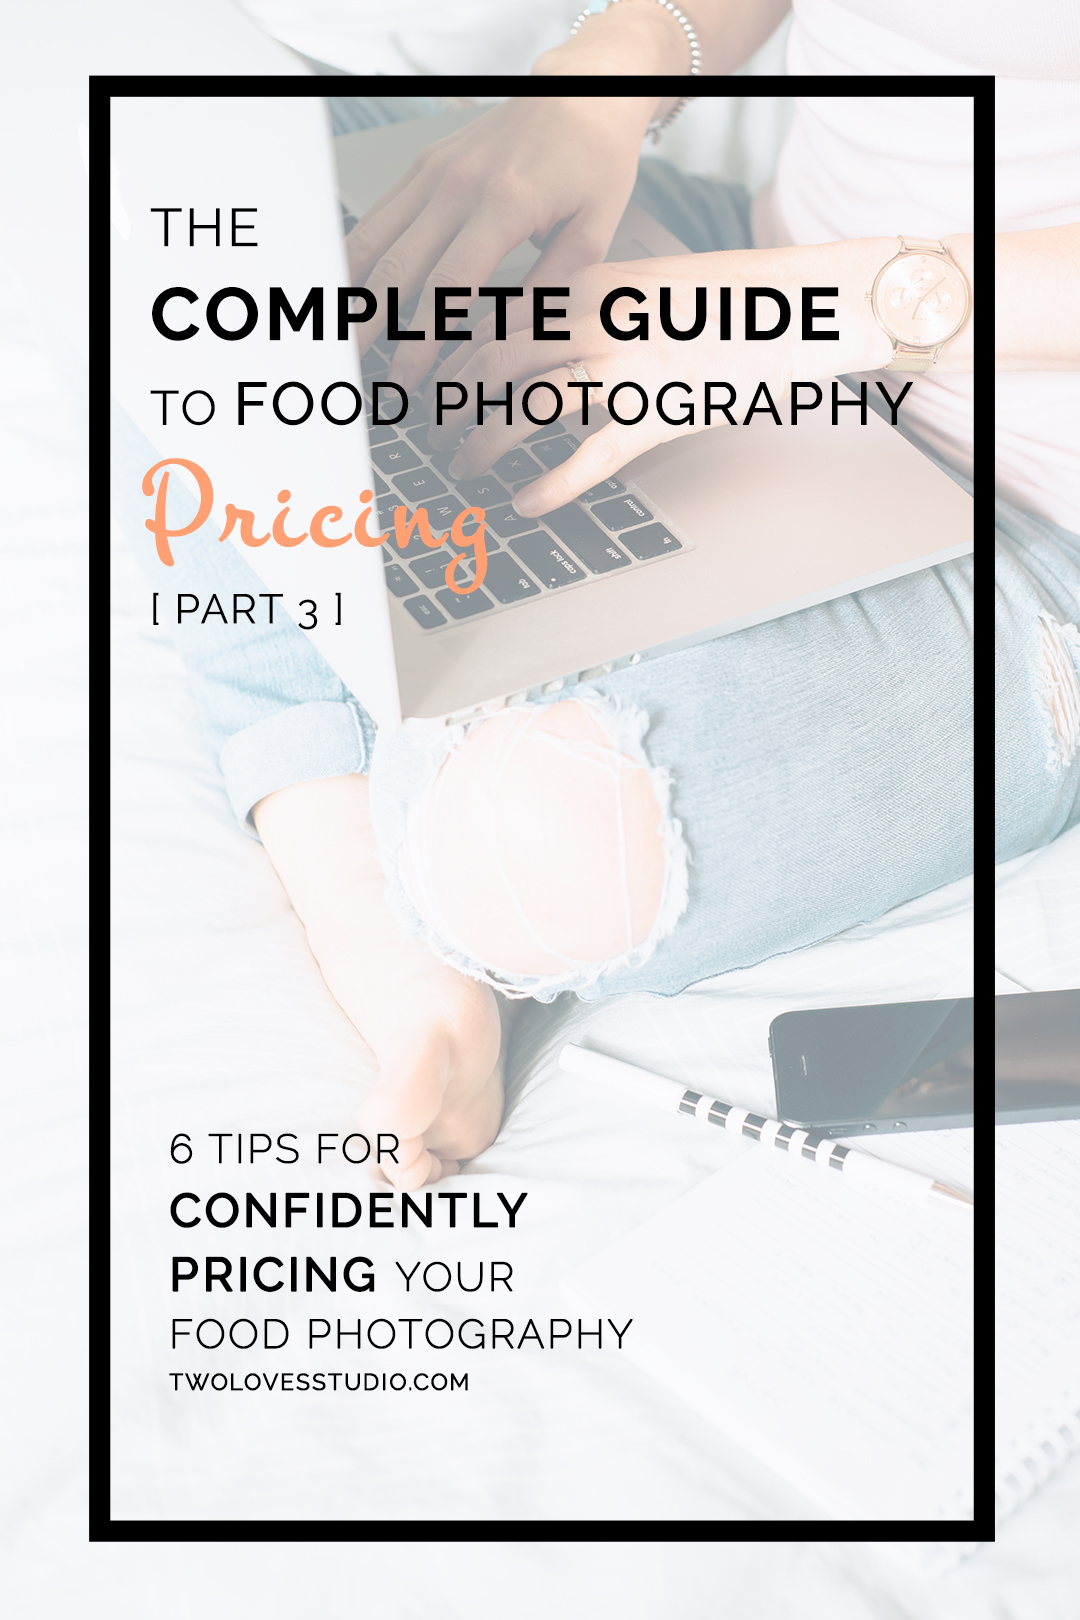 The Complete Guide To Food Photography Pricing Part 3 | Here are 6 tips so you can confidently price your food photography and tackle negotiations along the way. Perfect for freelance photographers and food bloggers. Click here to read more.